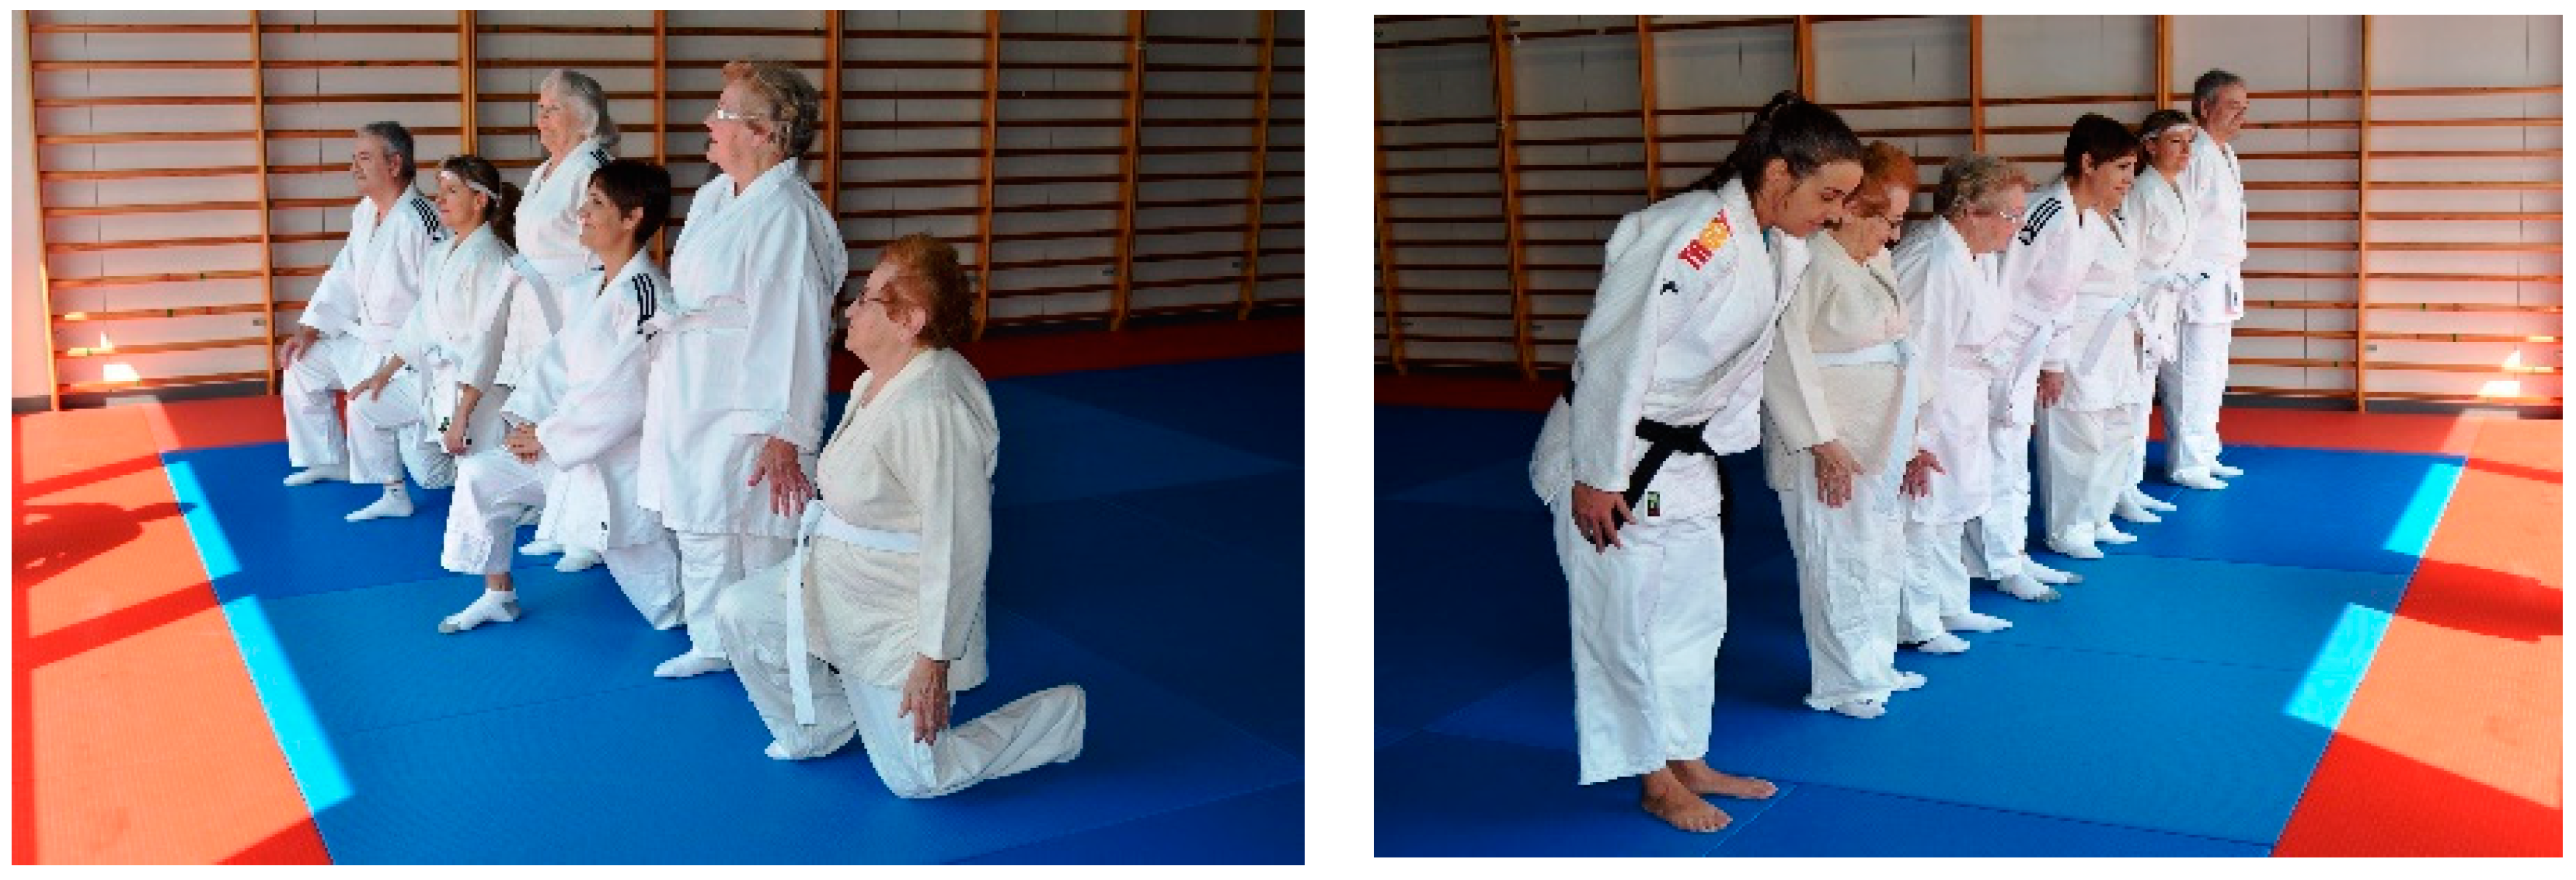 Societies   Free Full-Text   Adapted Utilitarian Judo: The